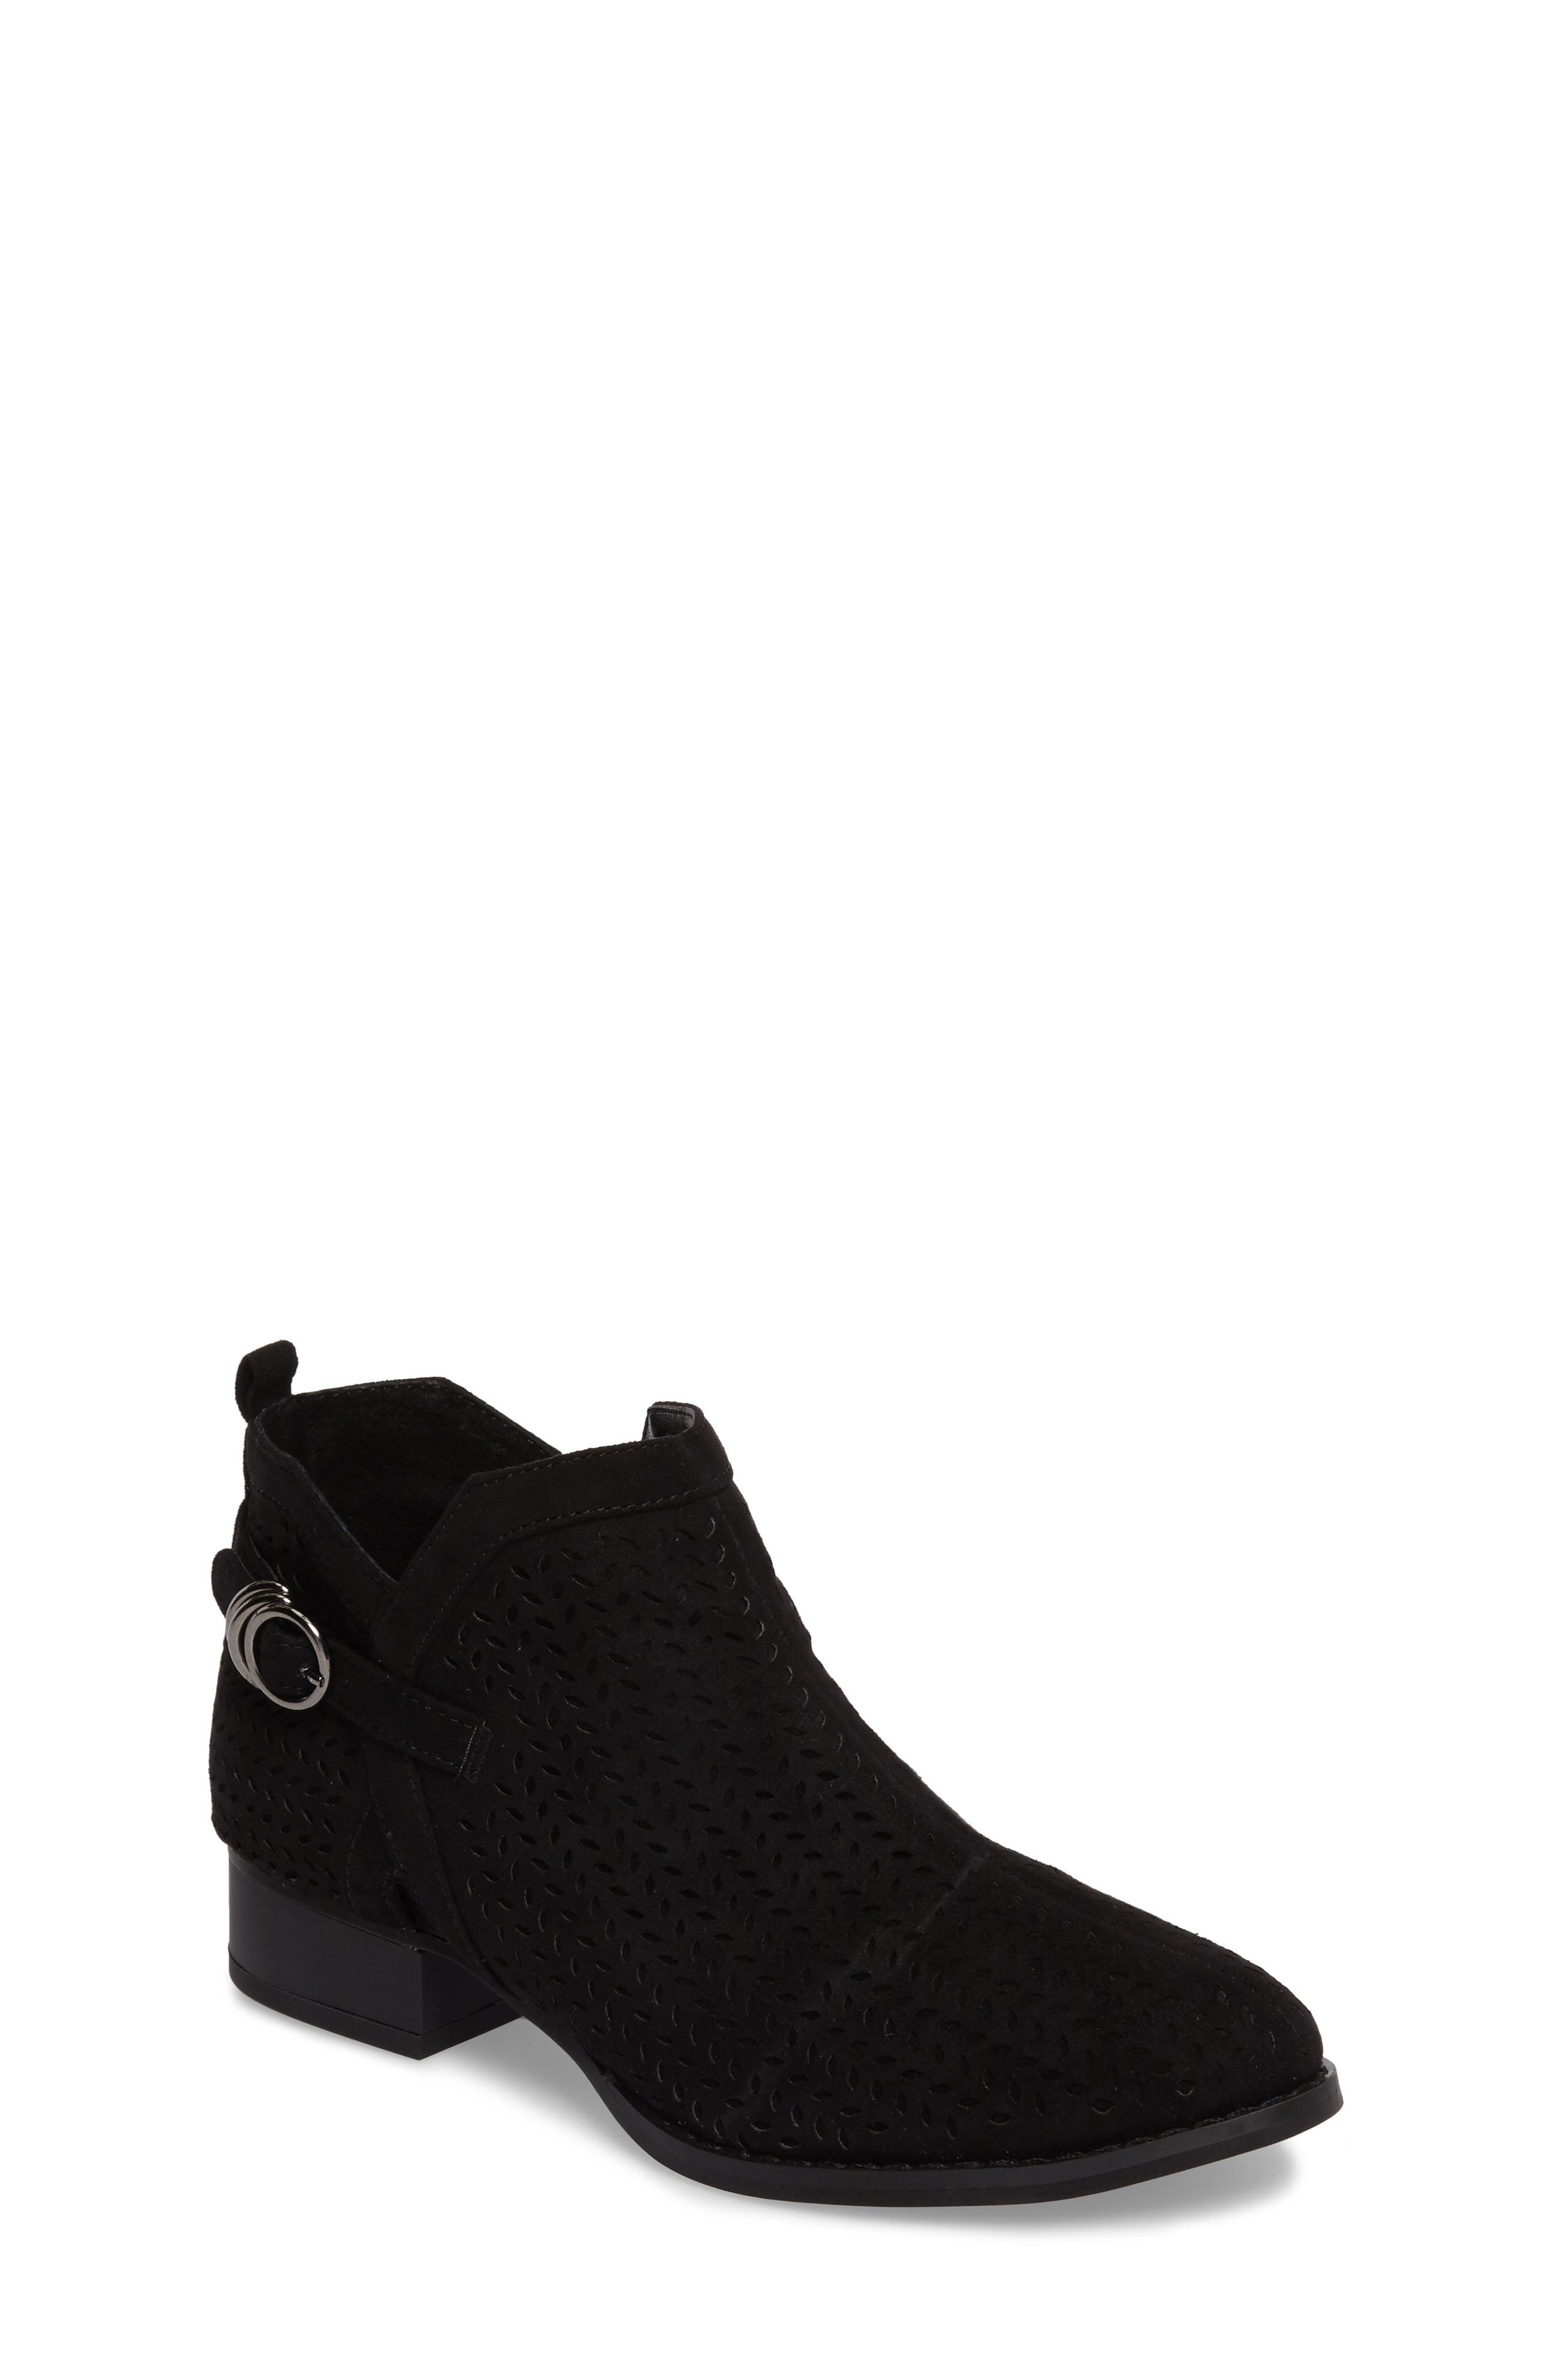 Campina Perforated Bootie,                             Main thumbnail 1, color,                             BLACK SUEDE